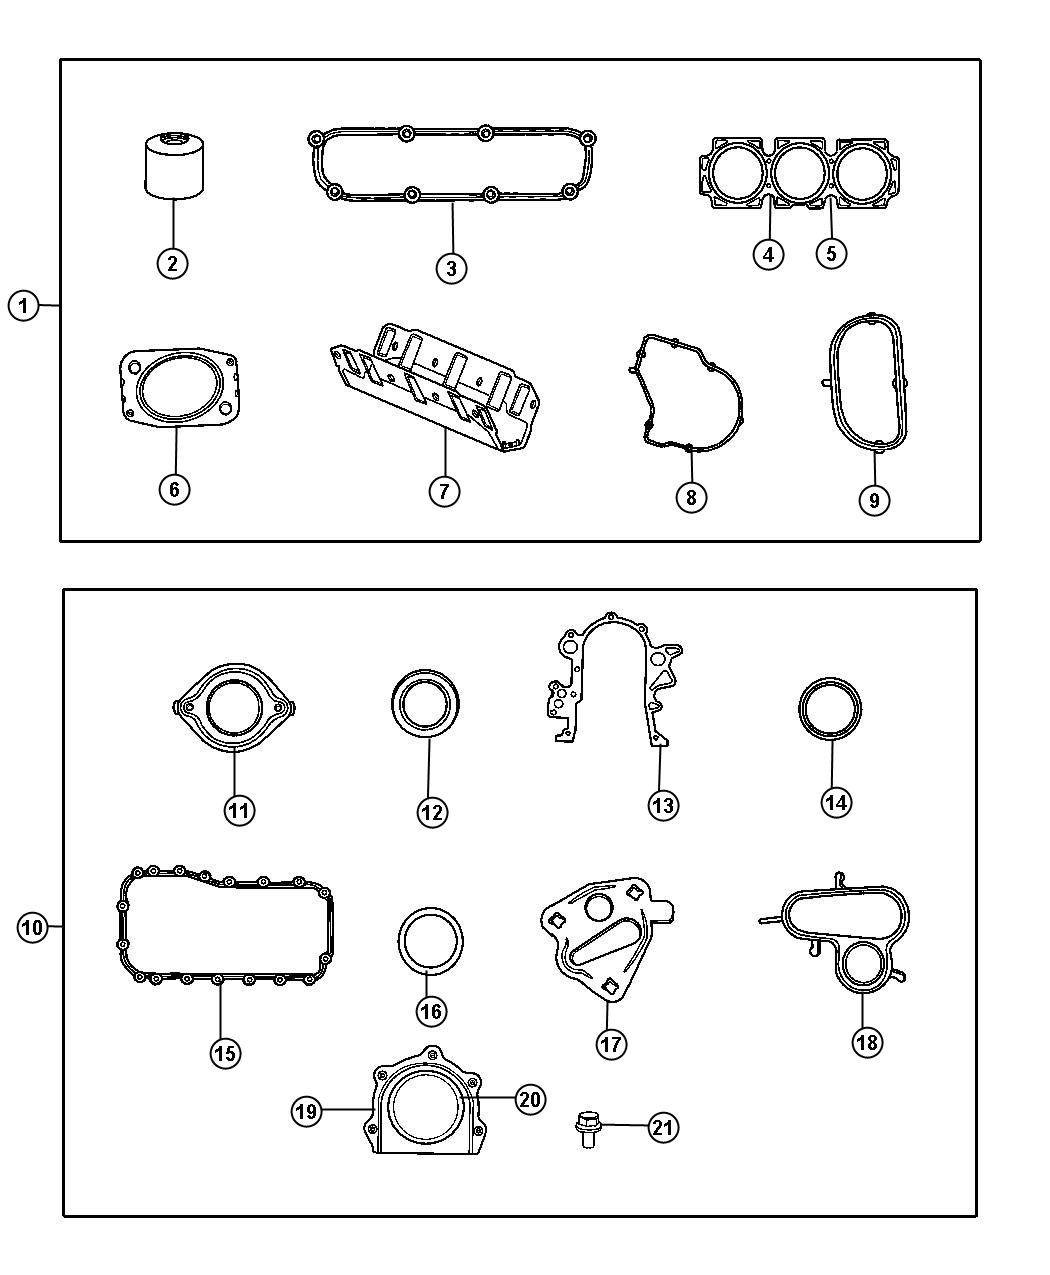 Diagram Gasket Packages 3.3L [3.3L V6 OHV Engine]  [Engine - 3.3L V6 SMPI]. for your Plymouth